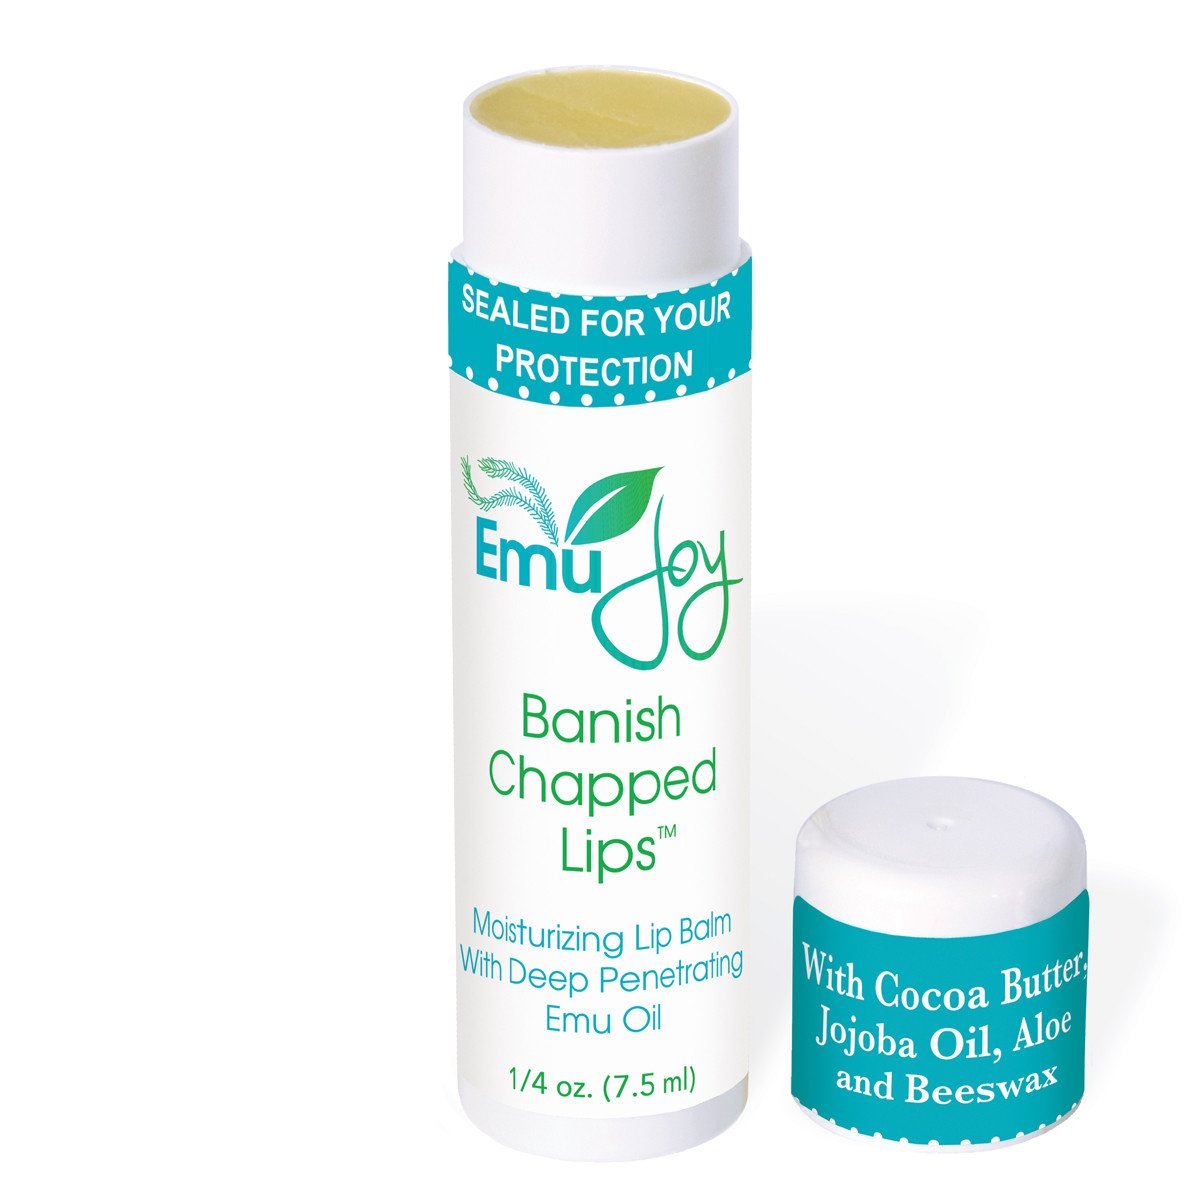 Stocking Stuffer BANISH CHAPPED LIPS Natural Lip Balm Ultra Moisturizing Emu Oil, Coconut Oil, Beeswax, Cocoa Butter and Other Natural Lip Moisturizers Tube has 50% MORE Than Most Lip Balms